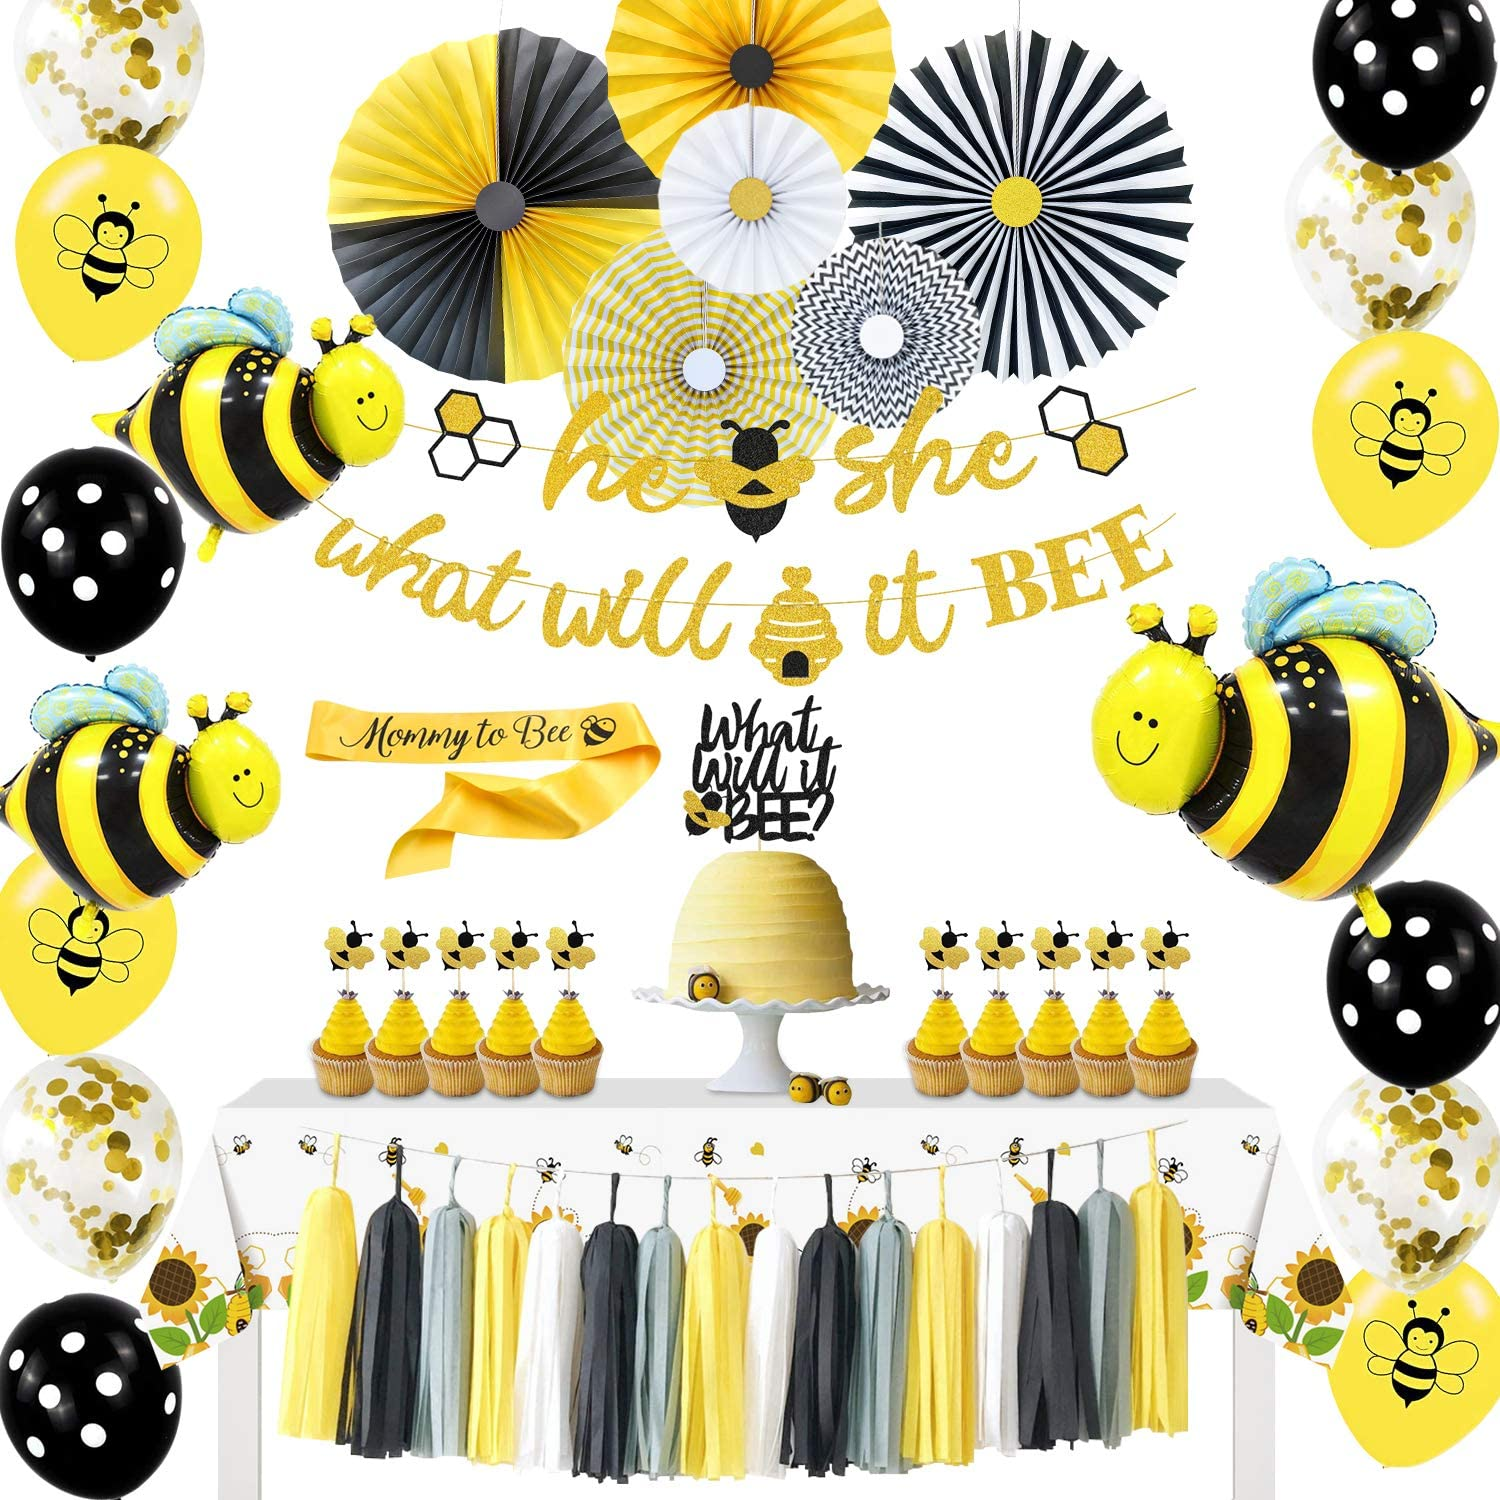 NAIWOXI What Will It Bee Gender Reveal Party Supplies - Bumble Bee Gender Reveal Decorations for Kids Baby Shower, He or She Bee Banner, Bee Theme Table Cloth, Mommy to bee Sash, Paper Fans, Cake Topper, Balloons, for Baby Reveal Party Decorations